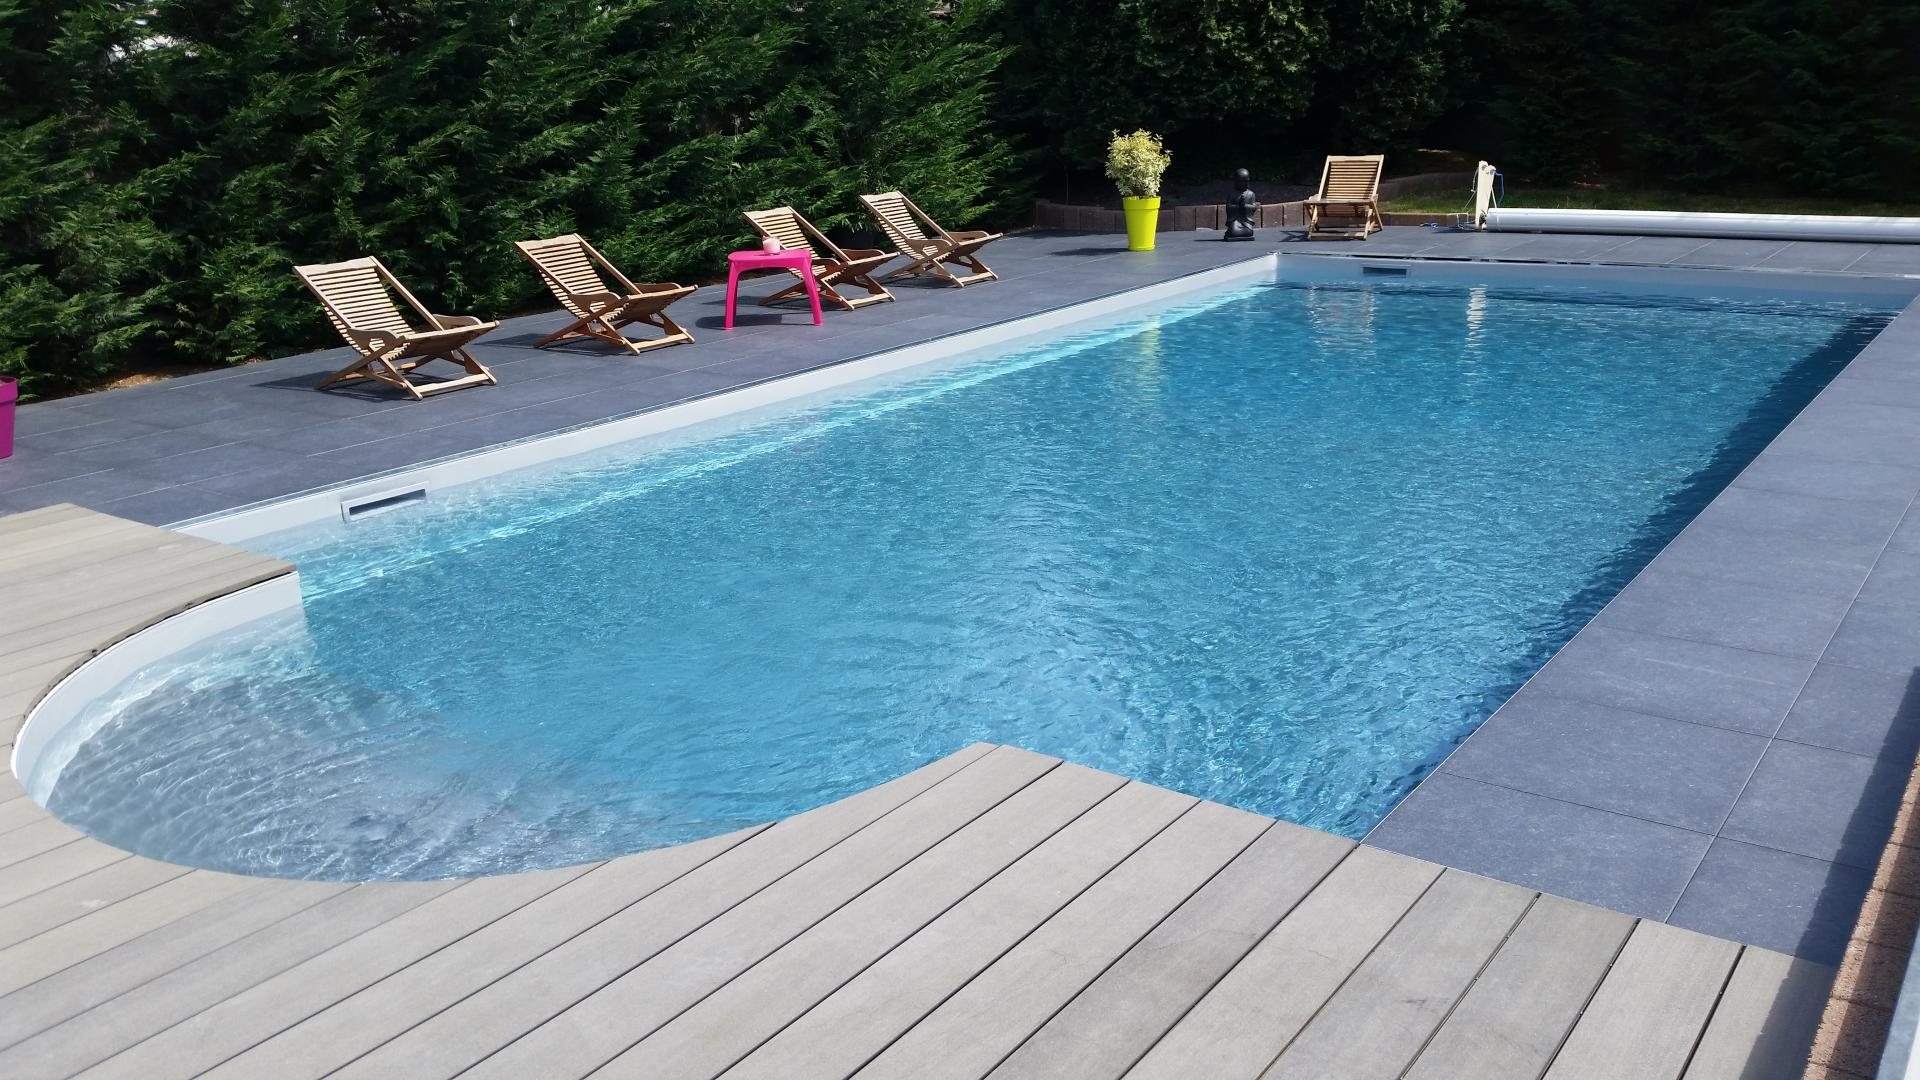 Construction entretien produits et r novation piscine for Construction de piscine 30